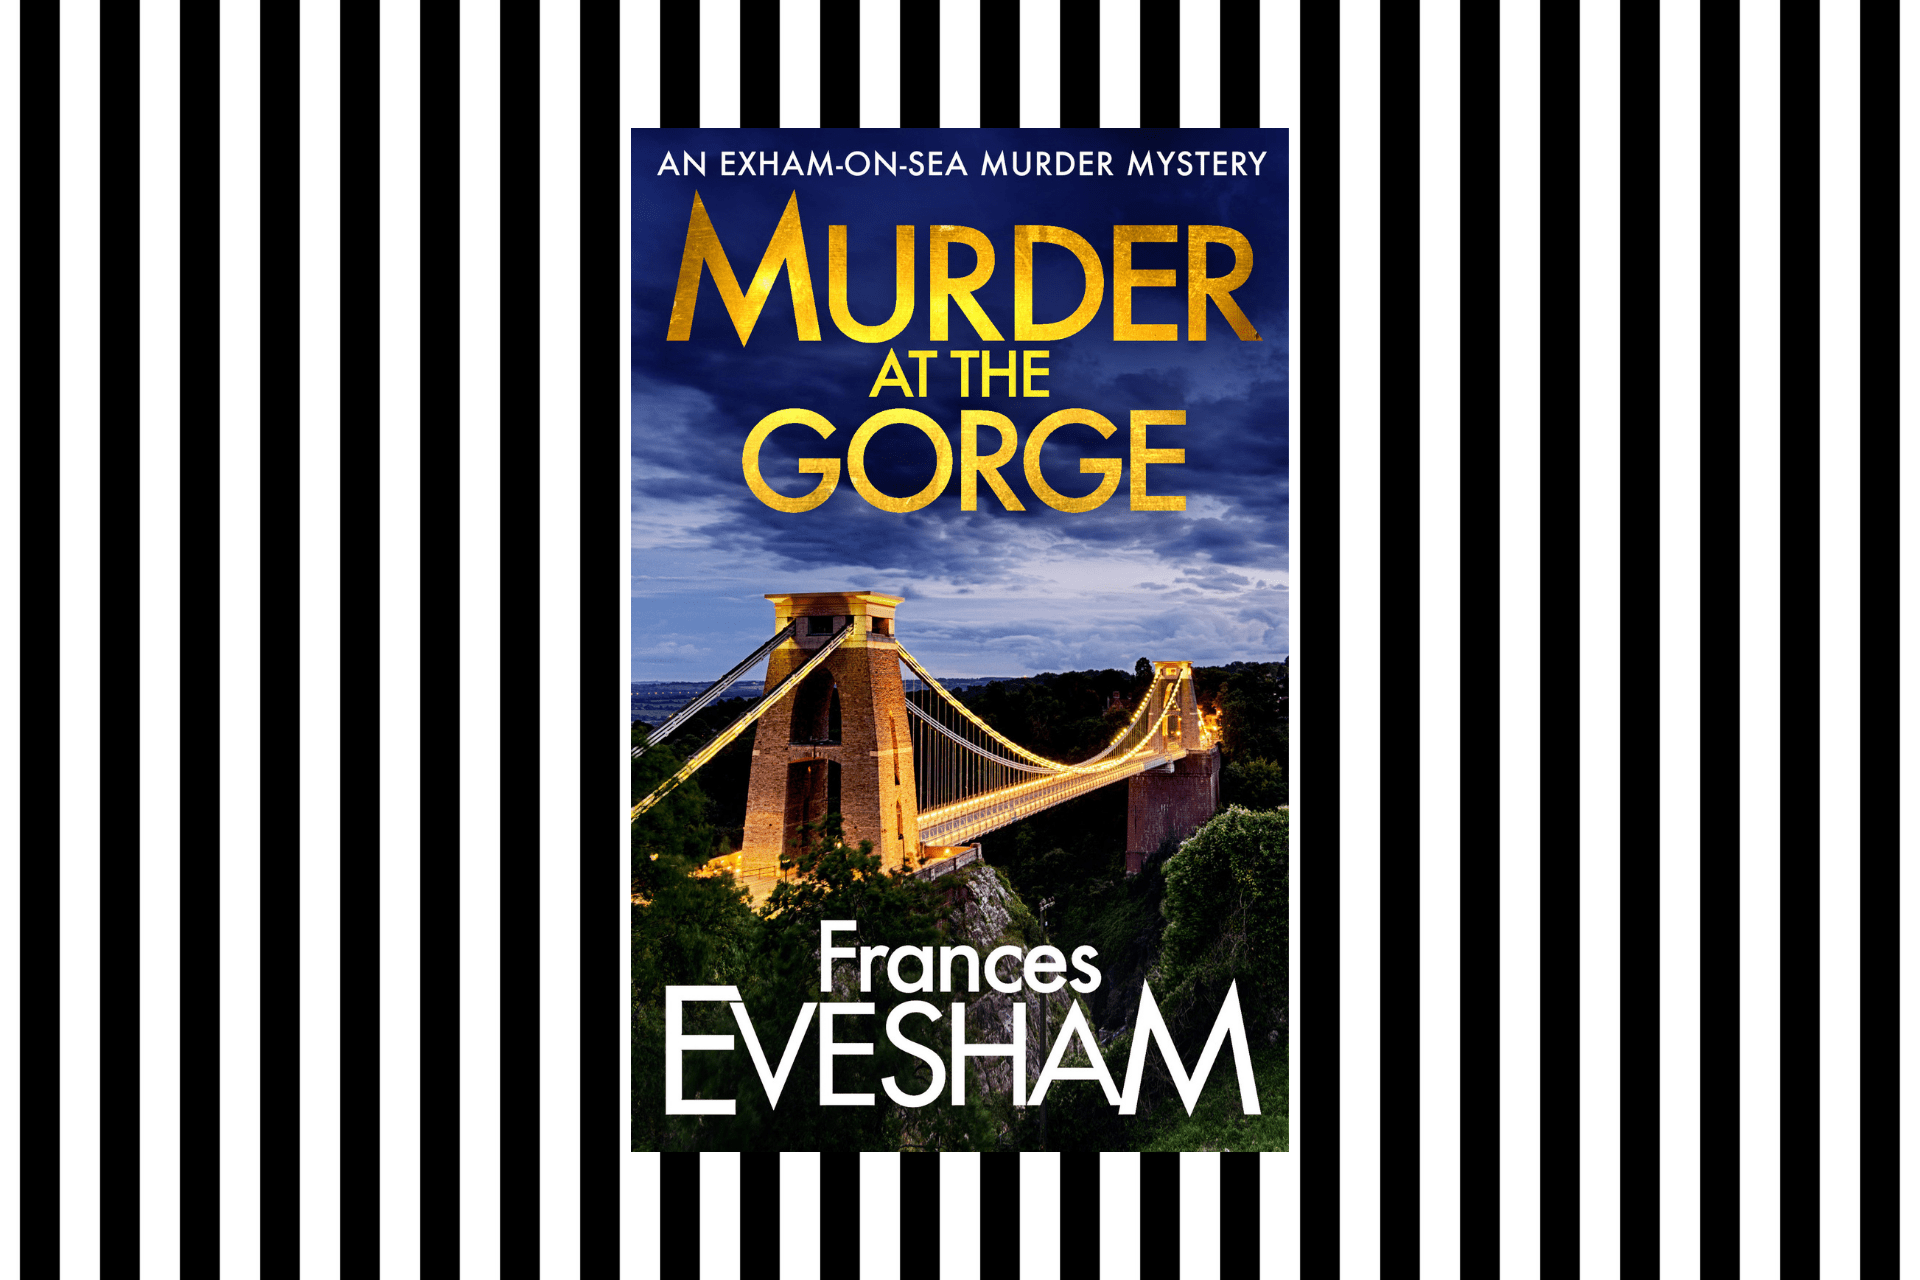 The cover of Murder at the Gorge by Frances Evesham